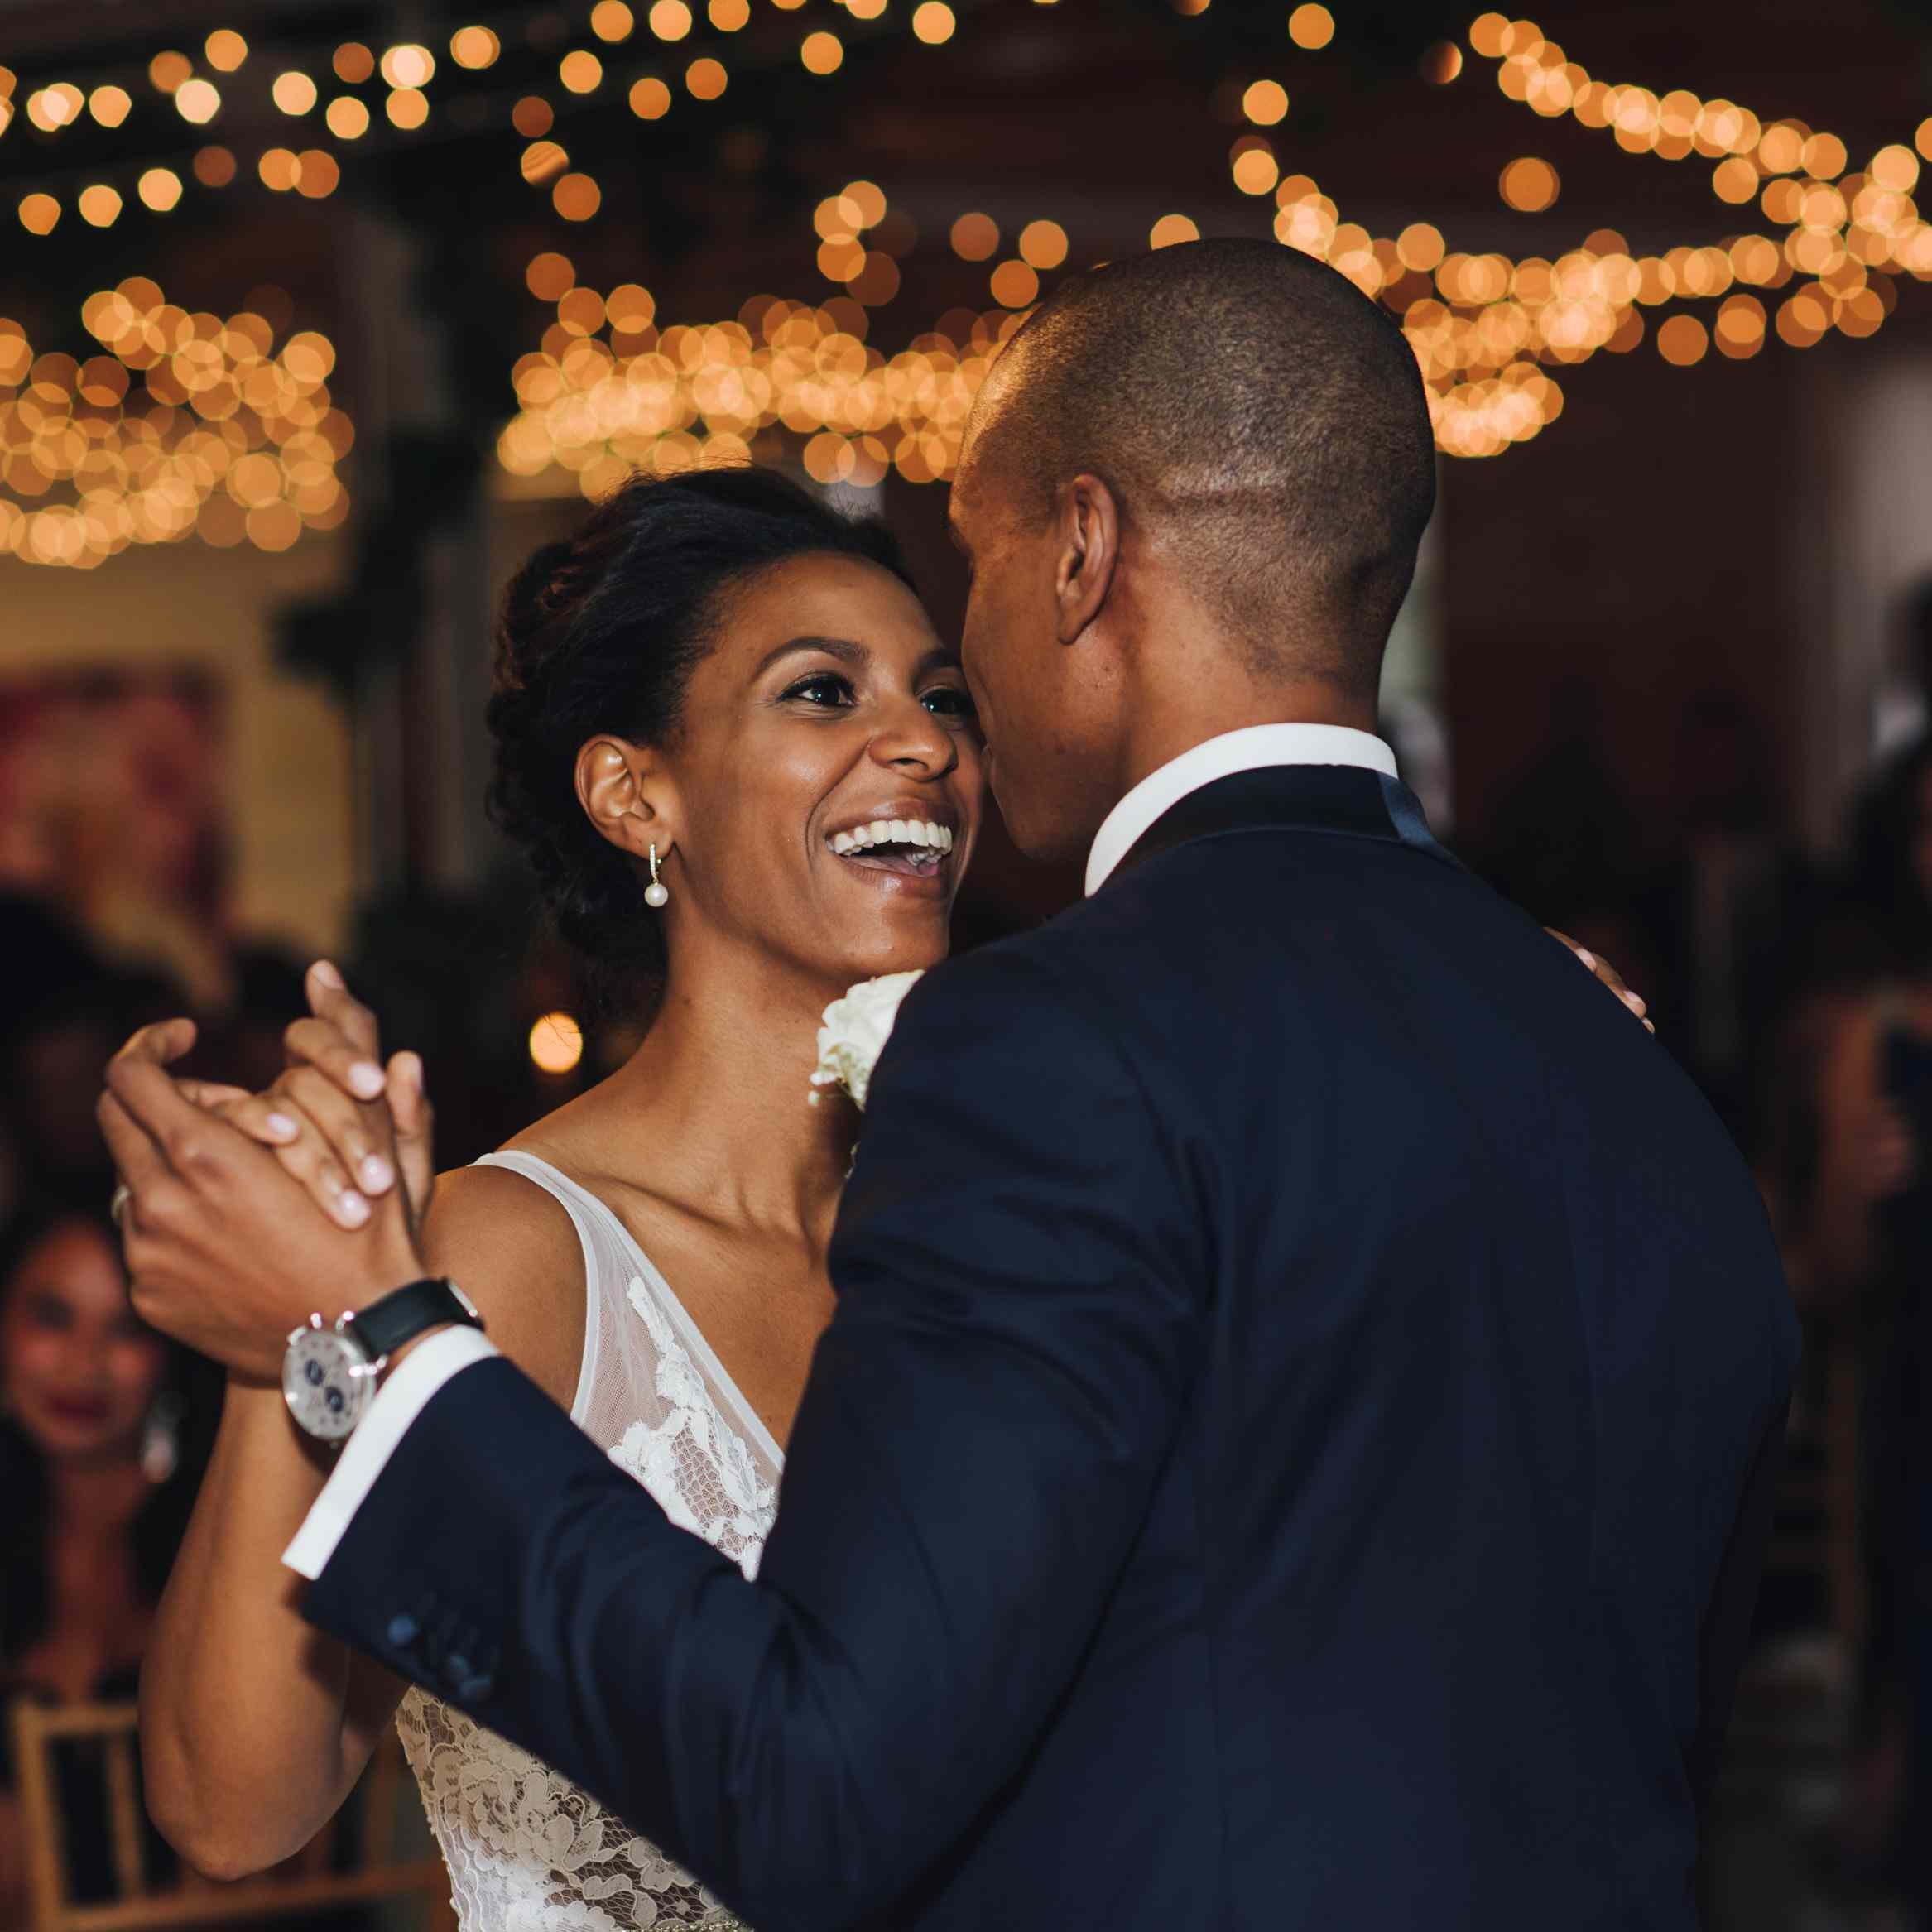 The Wedding Songs Couples Most Frequently Ban From Their